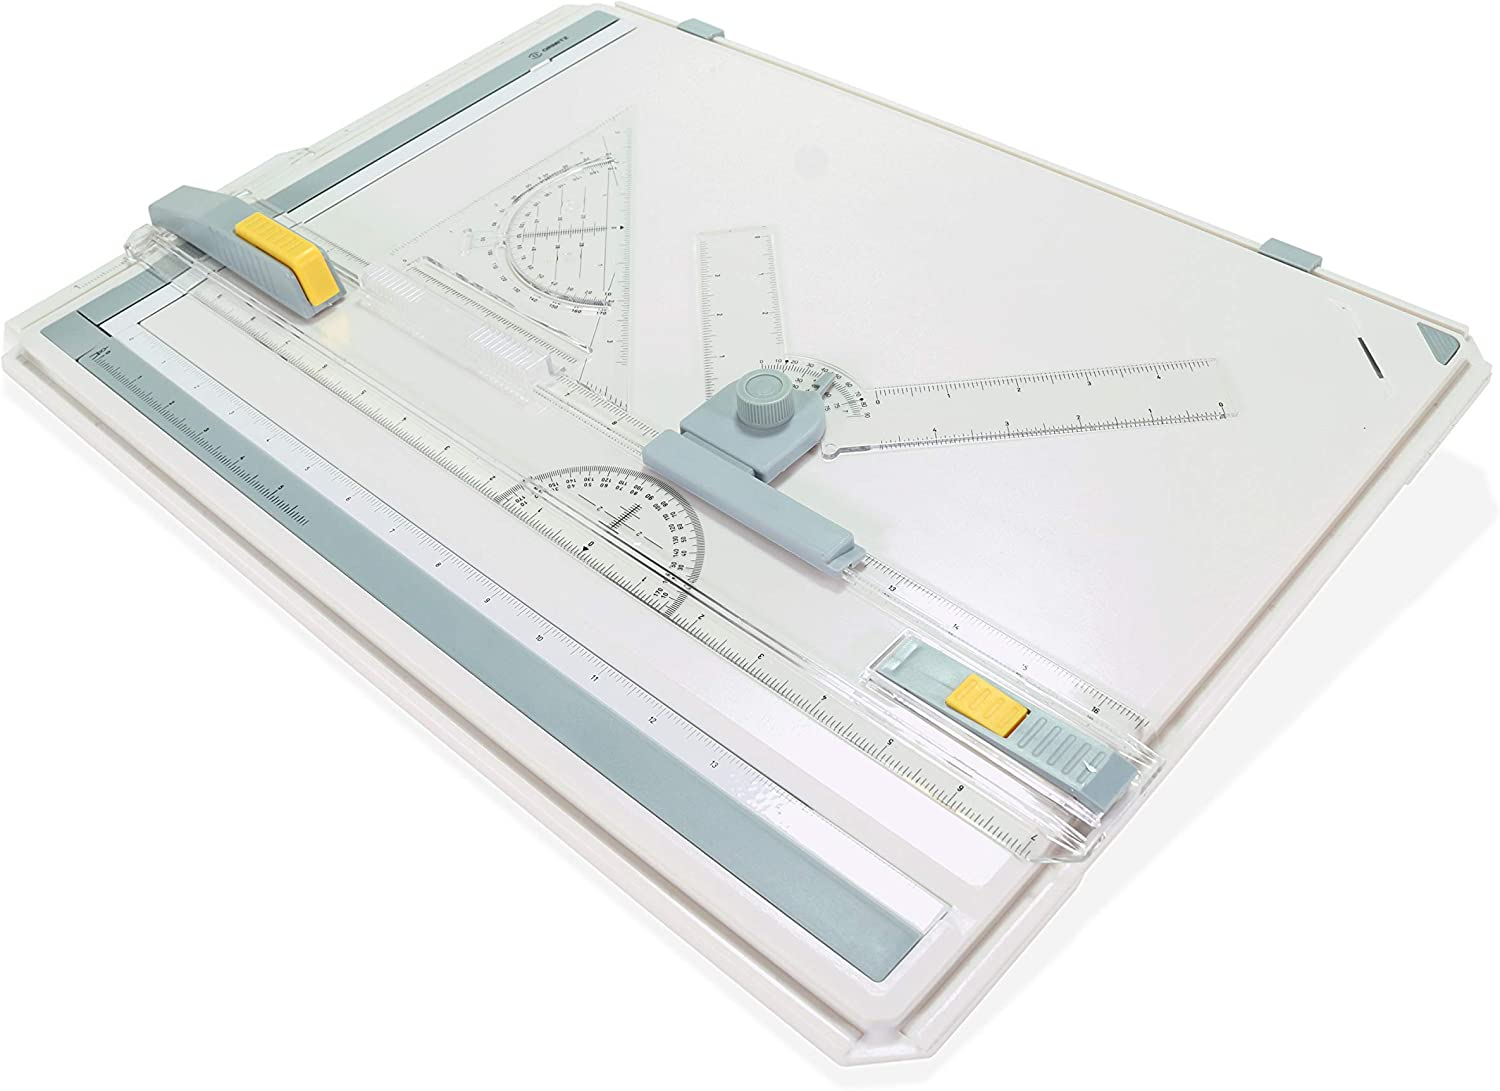 Precision Drafting Kit with Parallel Motion Ruler Set Perfect Tabletop or Lap Sketching Tool Ormitz A3 Portable Drawing Board in Imperial Units